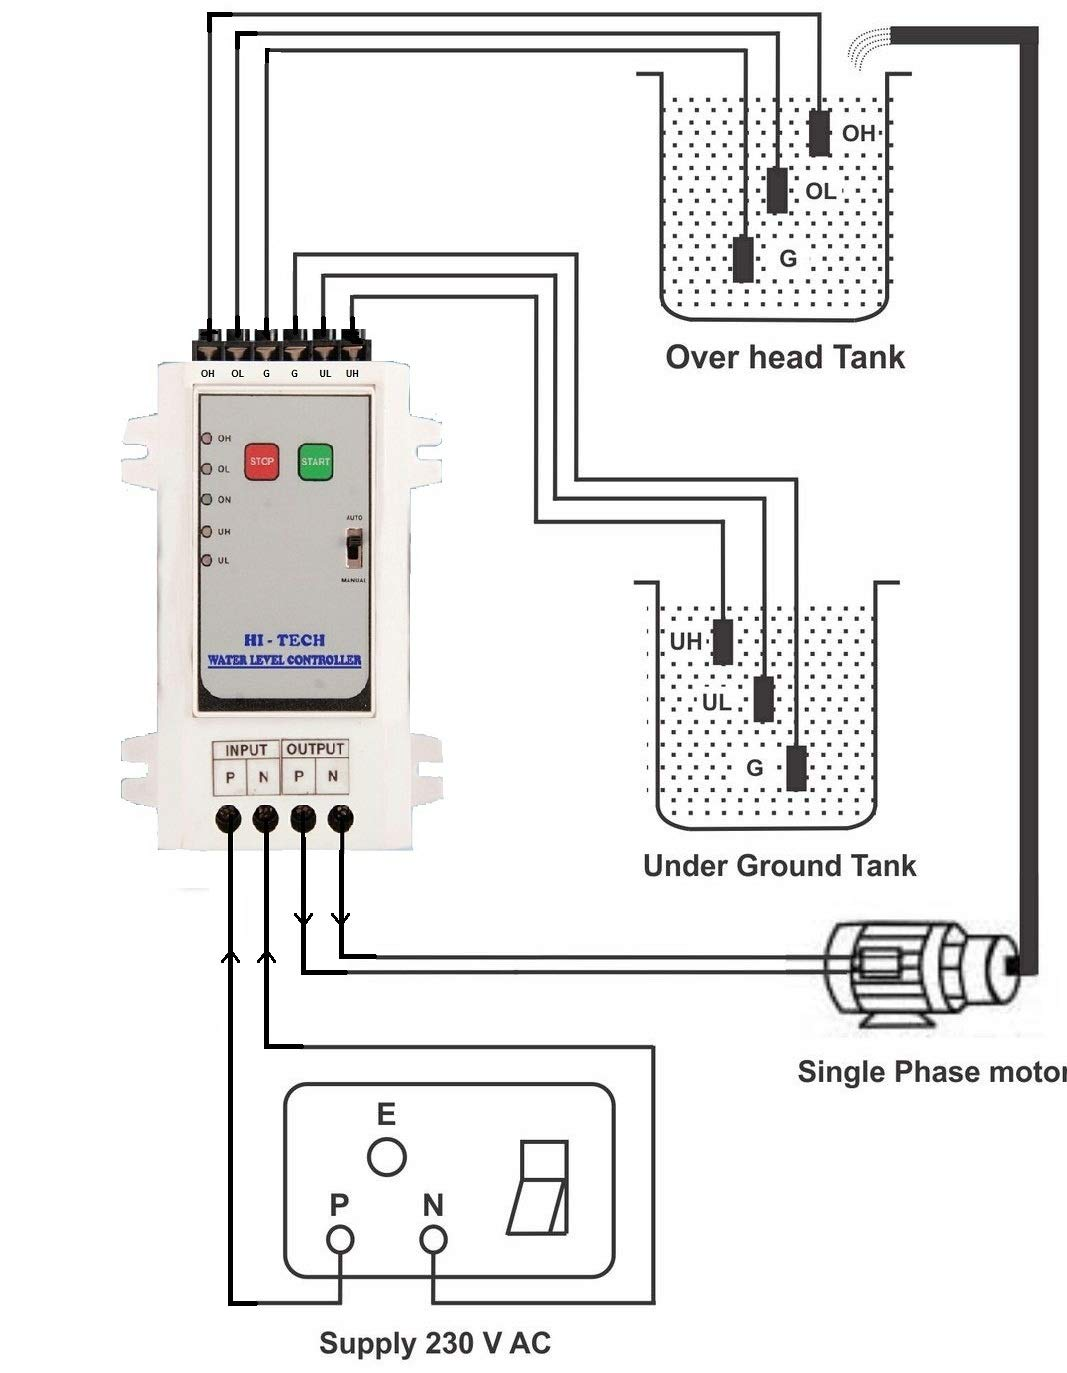 Hitech Fully Automatic Water Level Controller With Dry Run Detectors Tank Pump Circuit Protection Home Kitchen